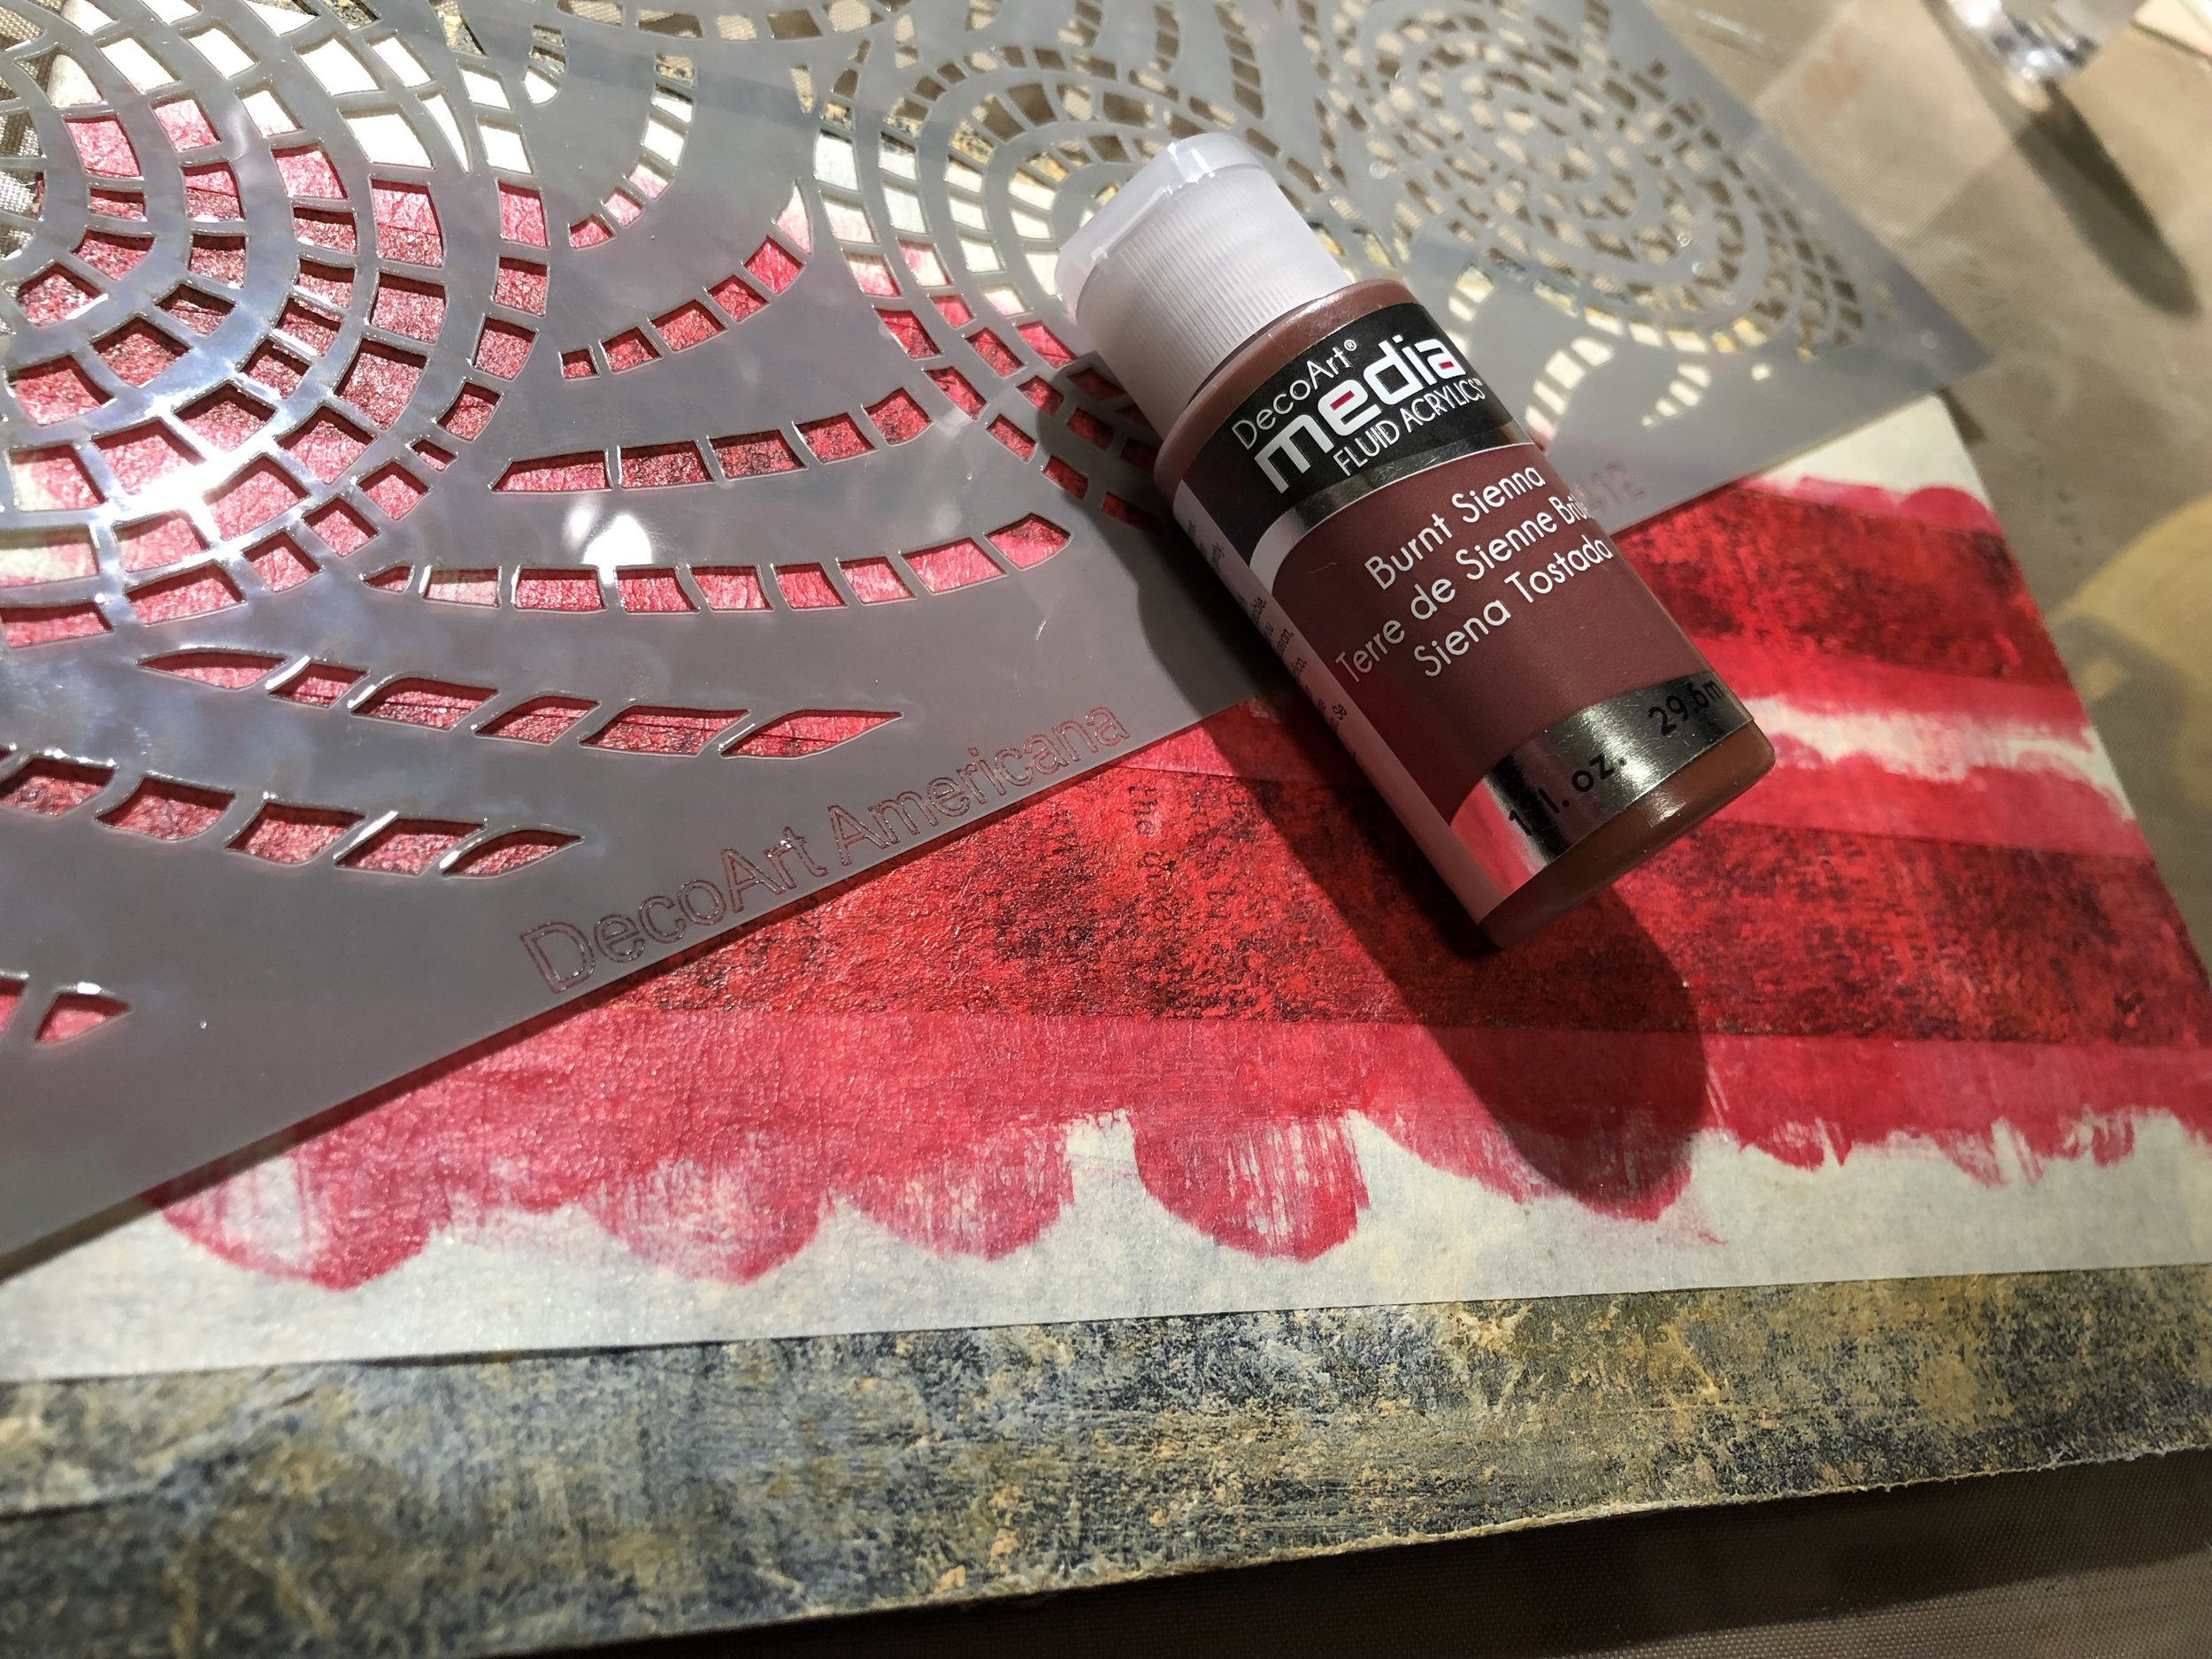 With a sponge and using DecoArt Americana's 'Segmented Swirls' stencil, apply DecoArt Media Fluid Acrylic in 'Burnt Sienna' over the red stripes.